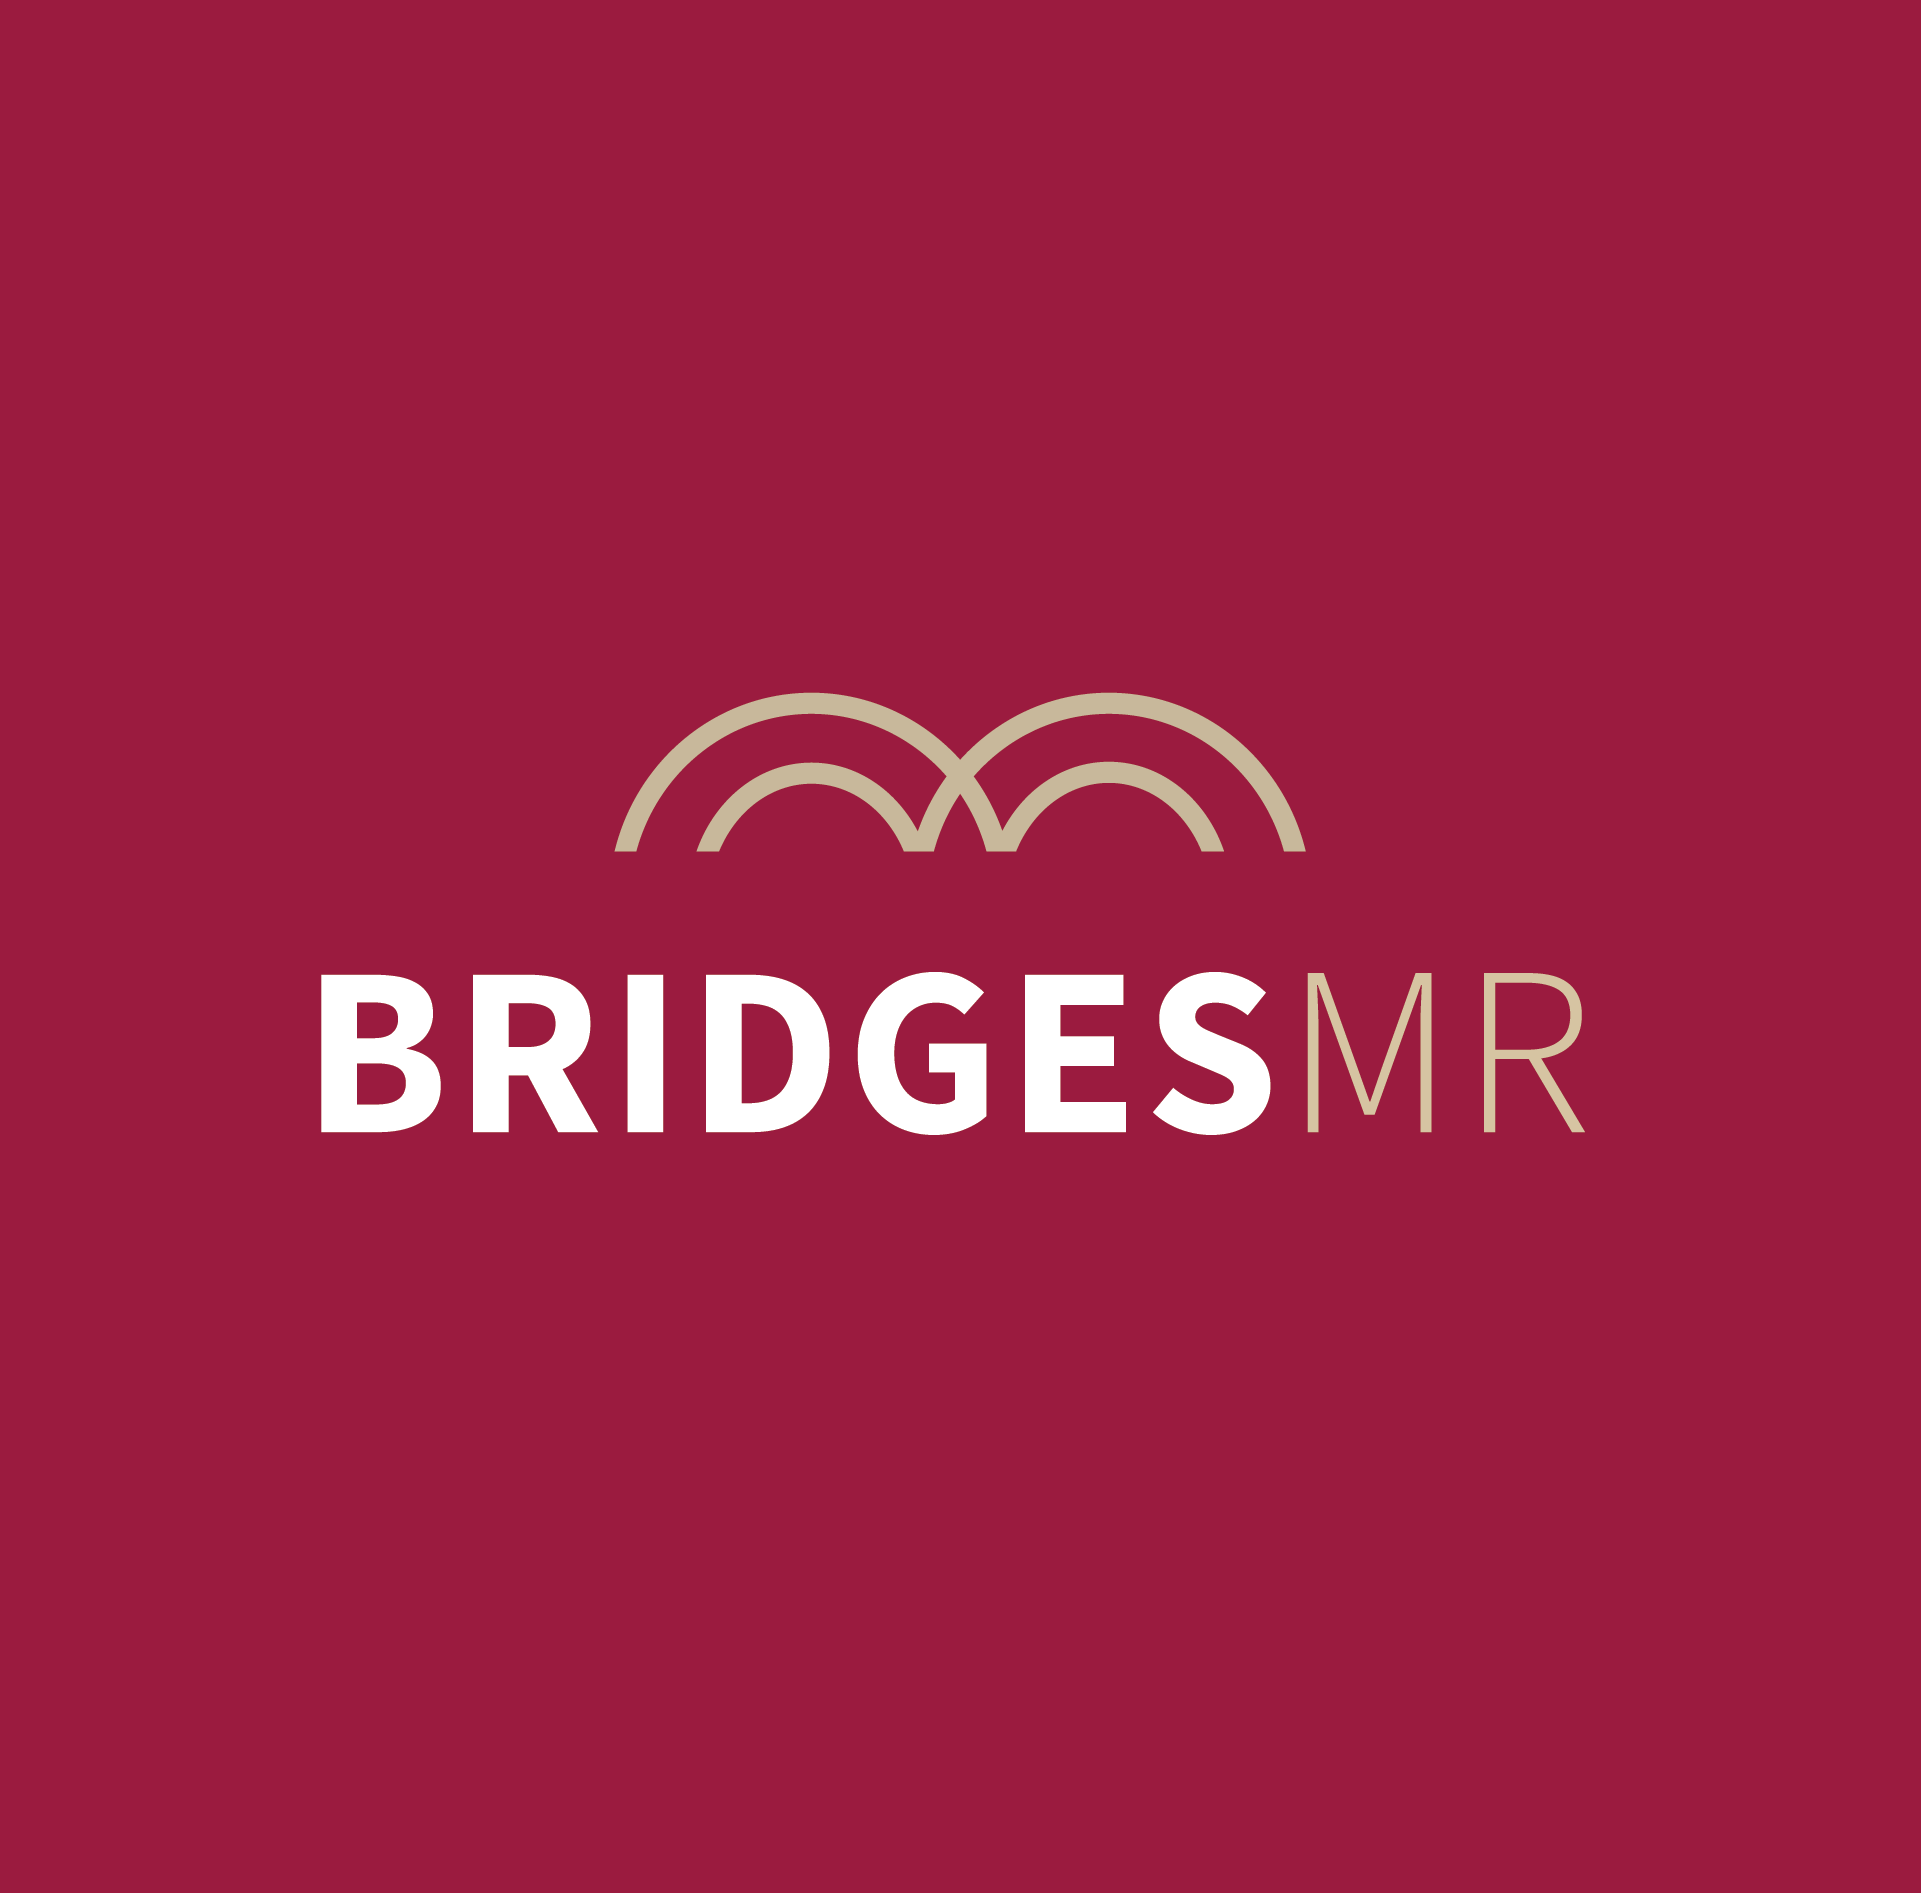 BRIDGES MR – CUSTOM BUILDER